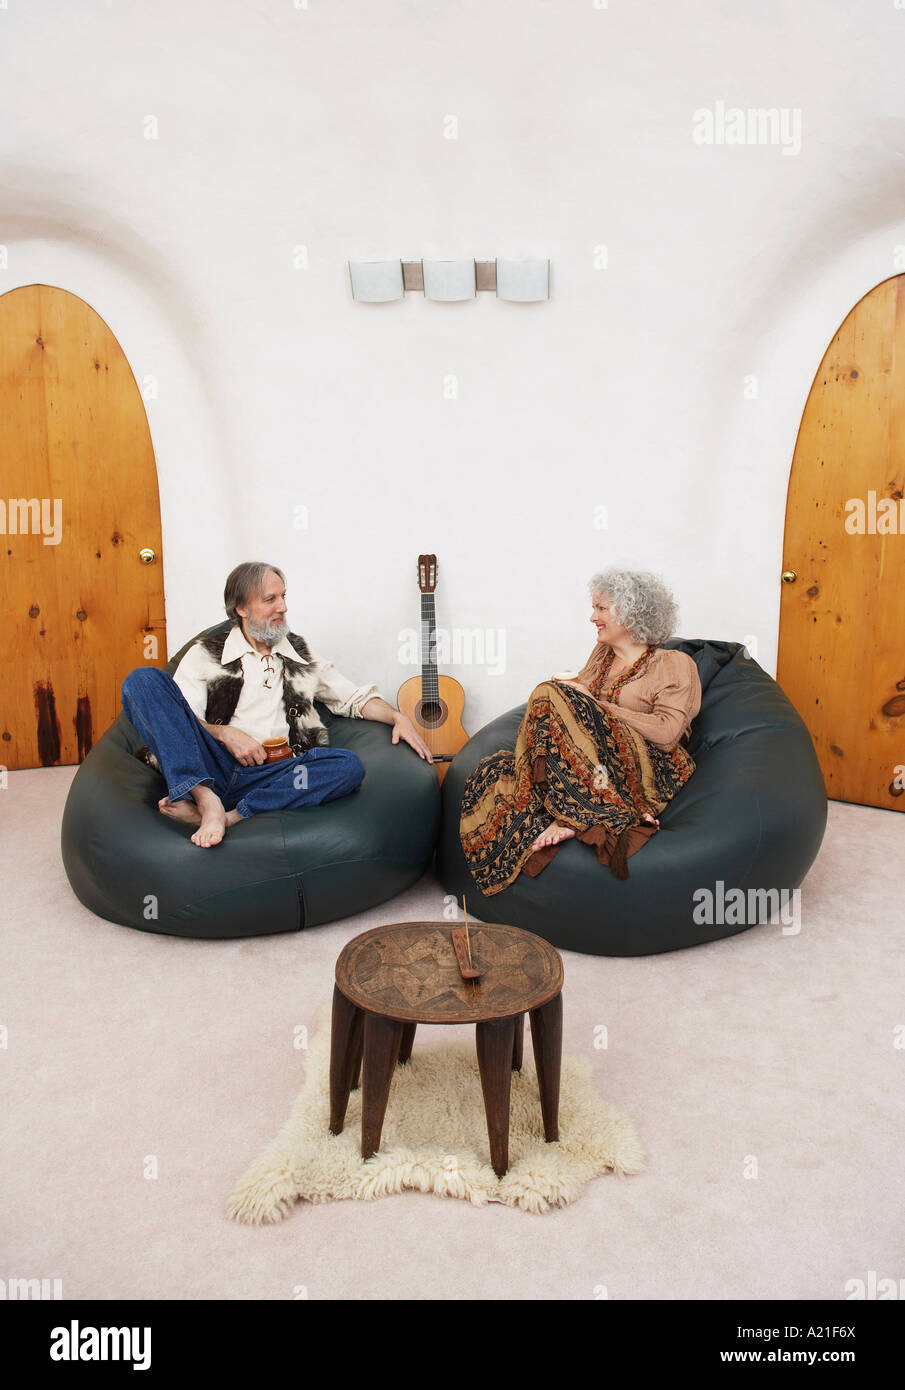 Couple Sitting in Bean Bag Chairs in Living Room Stock Photo